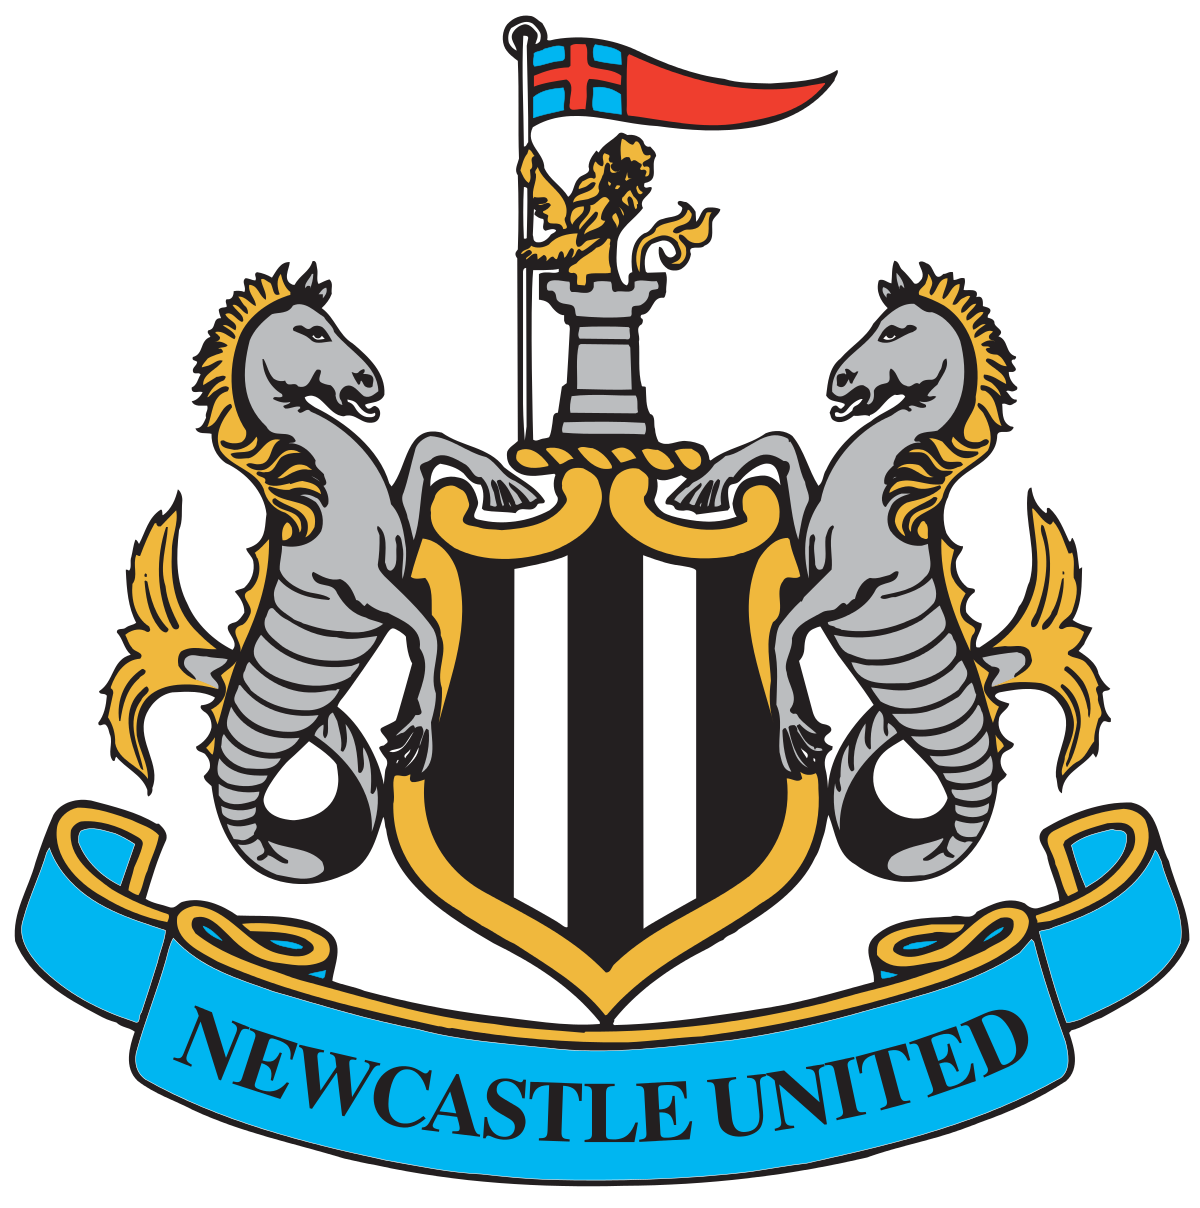 Newcastle United - Shop